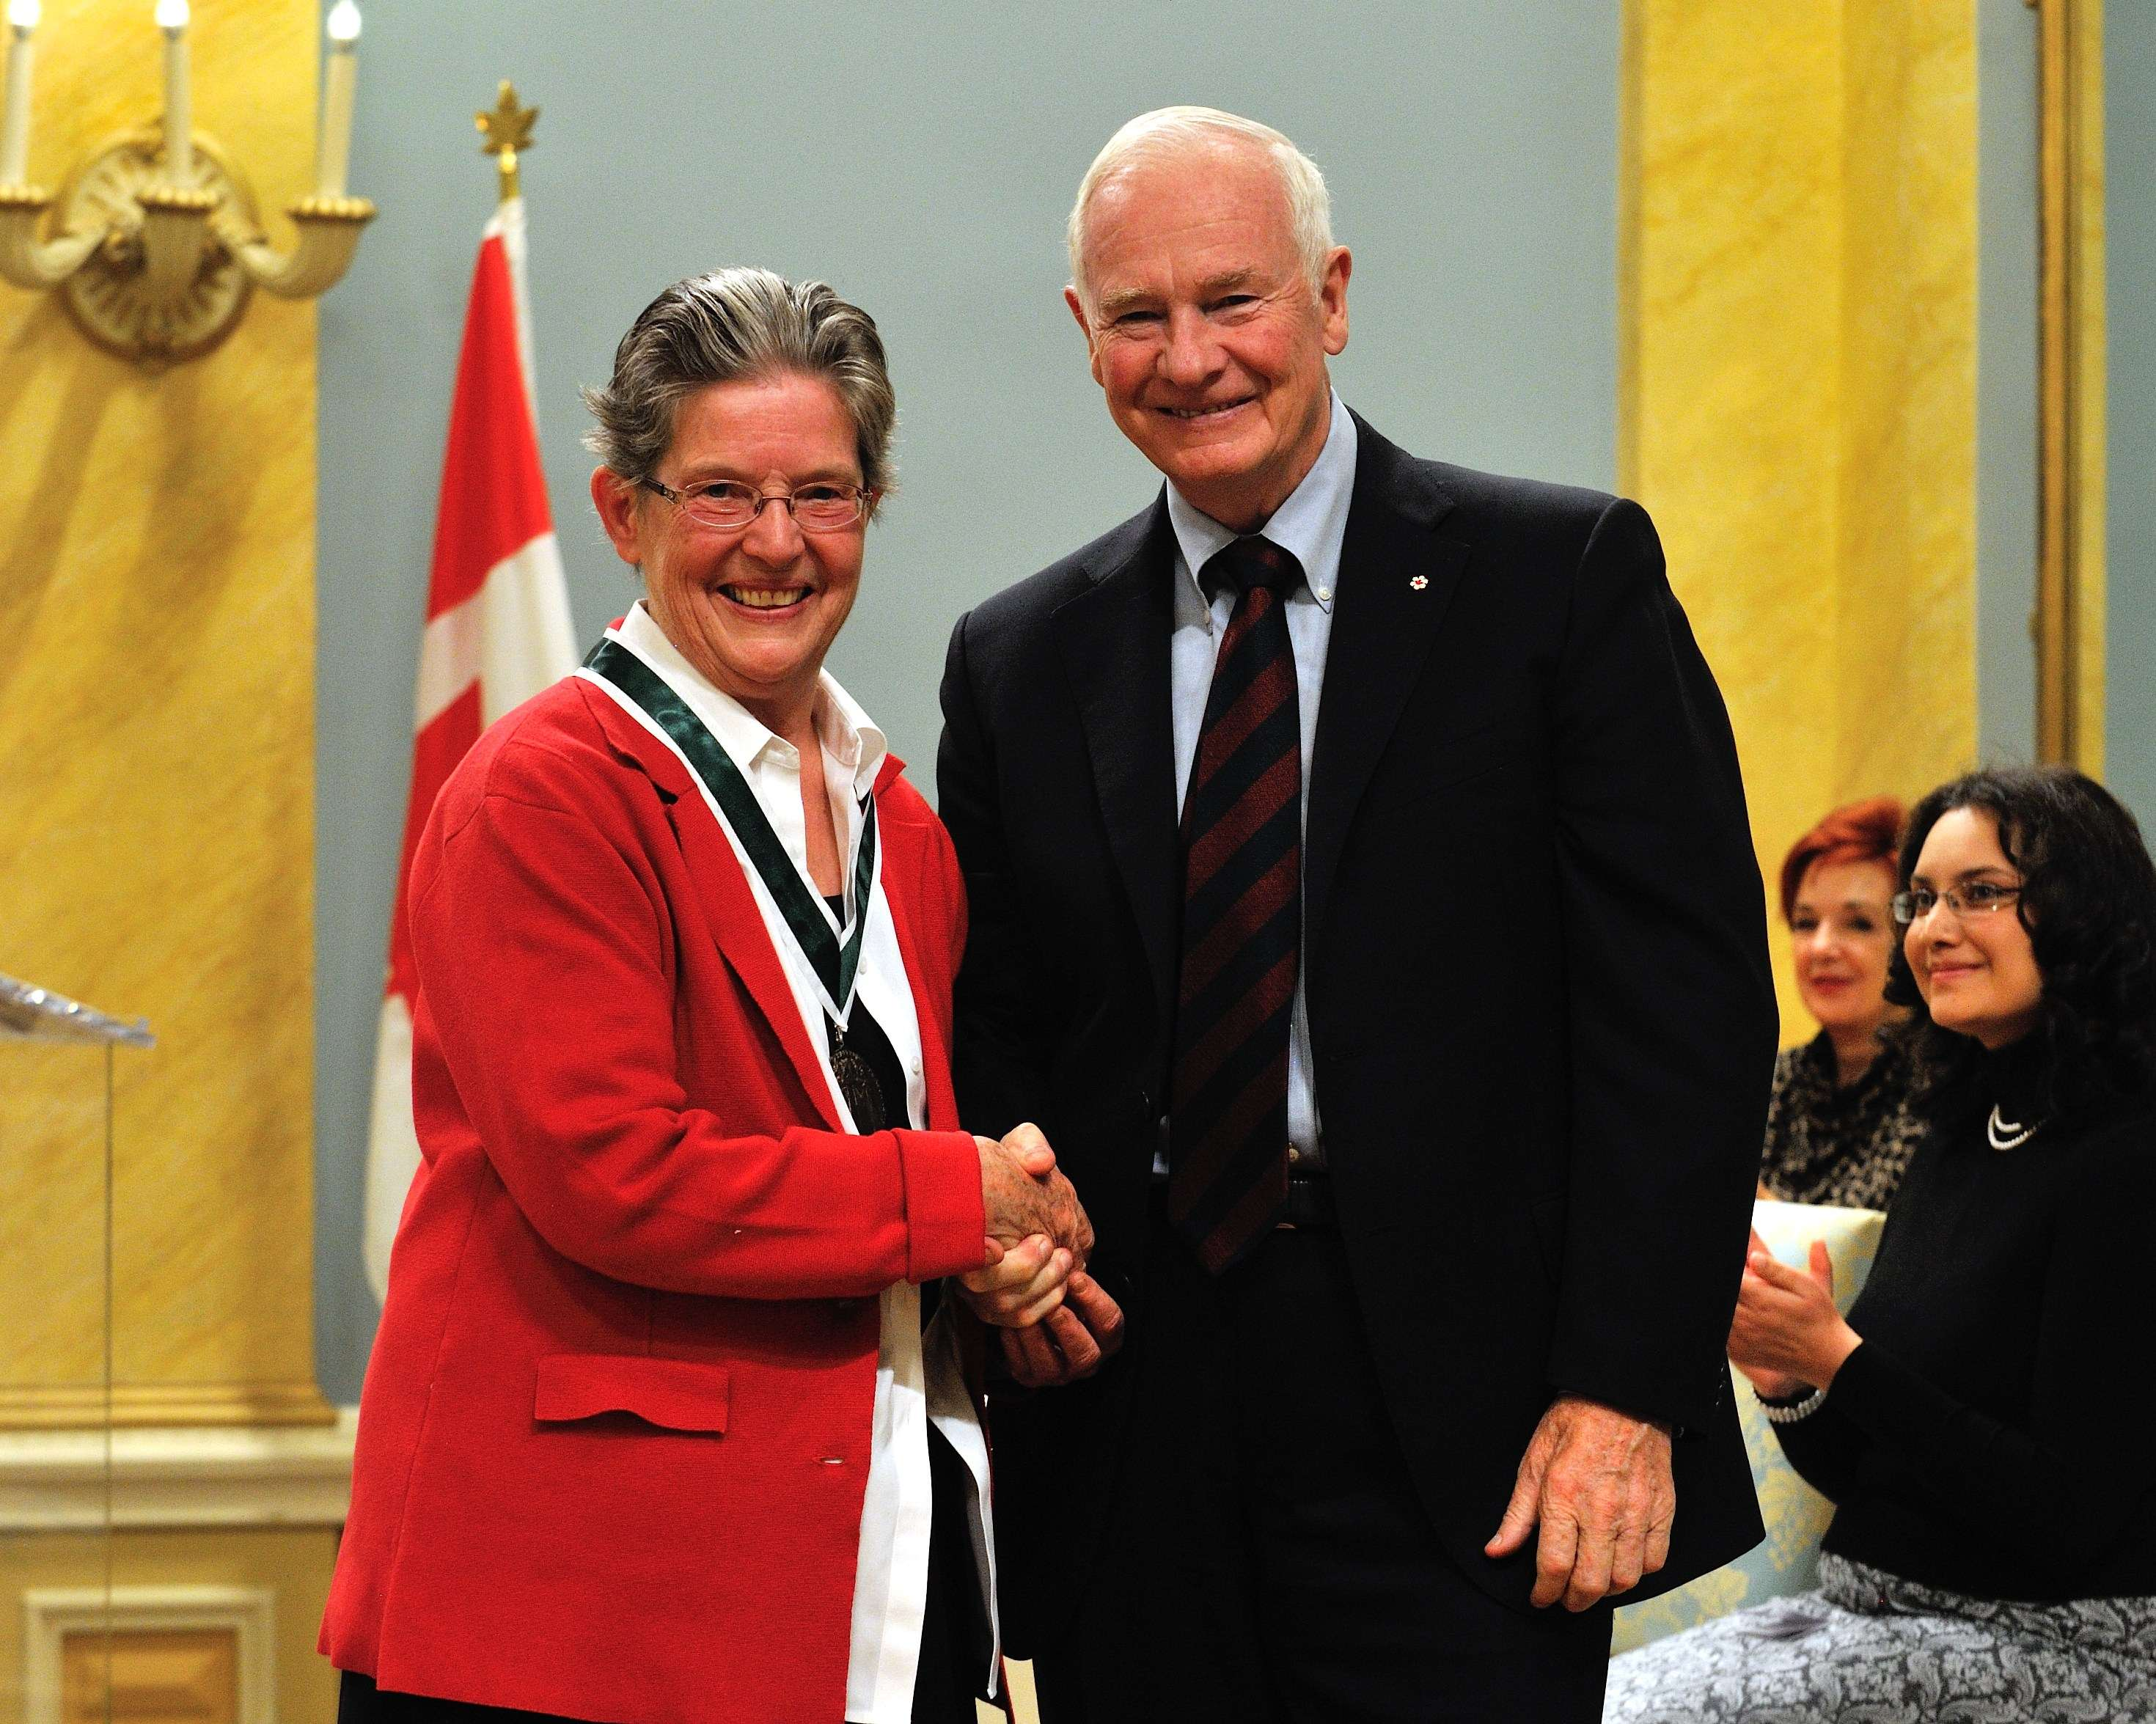 The first laureate, Ms. Caroline Andrew, of Ottawa, Ontario, is a professor emeritus, director of the Centre on Governance, and former dean of the Faculty of Social Sciences at the University of Ottawa.